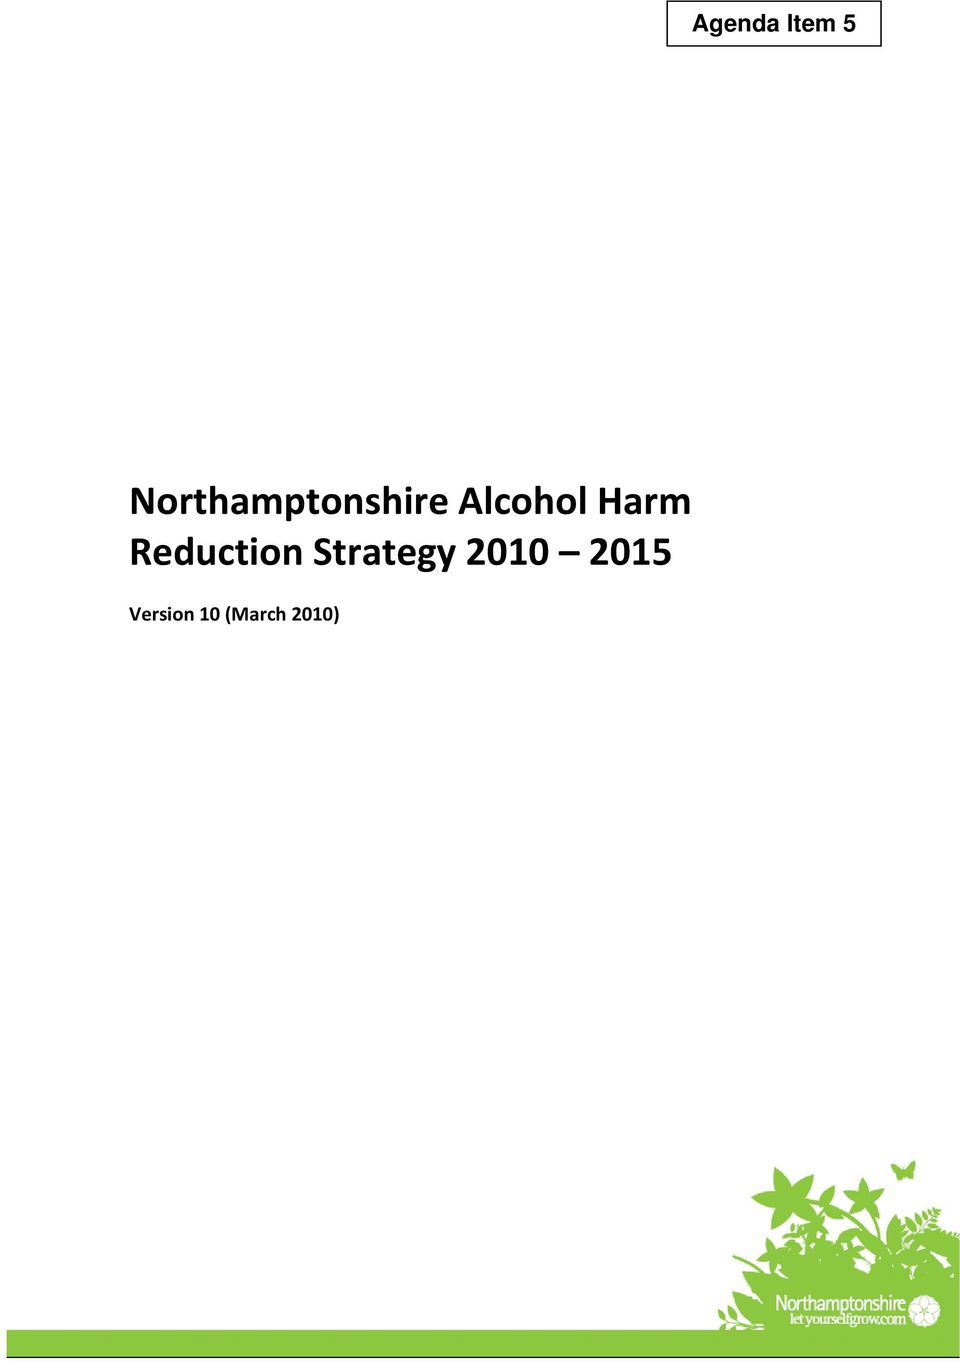 Alcohol Harm Reduction